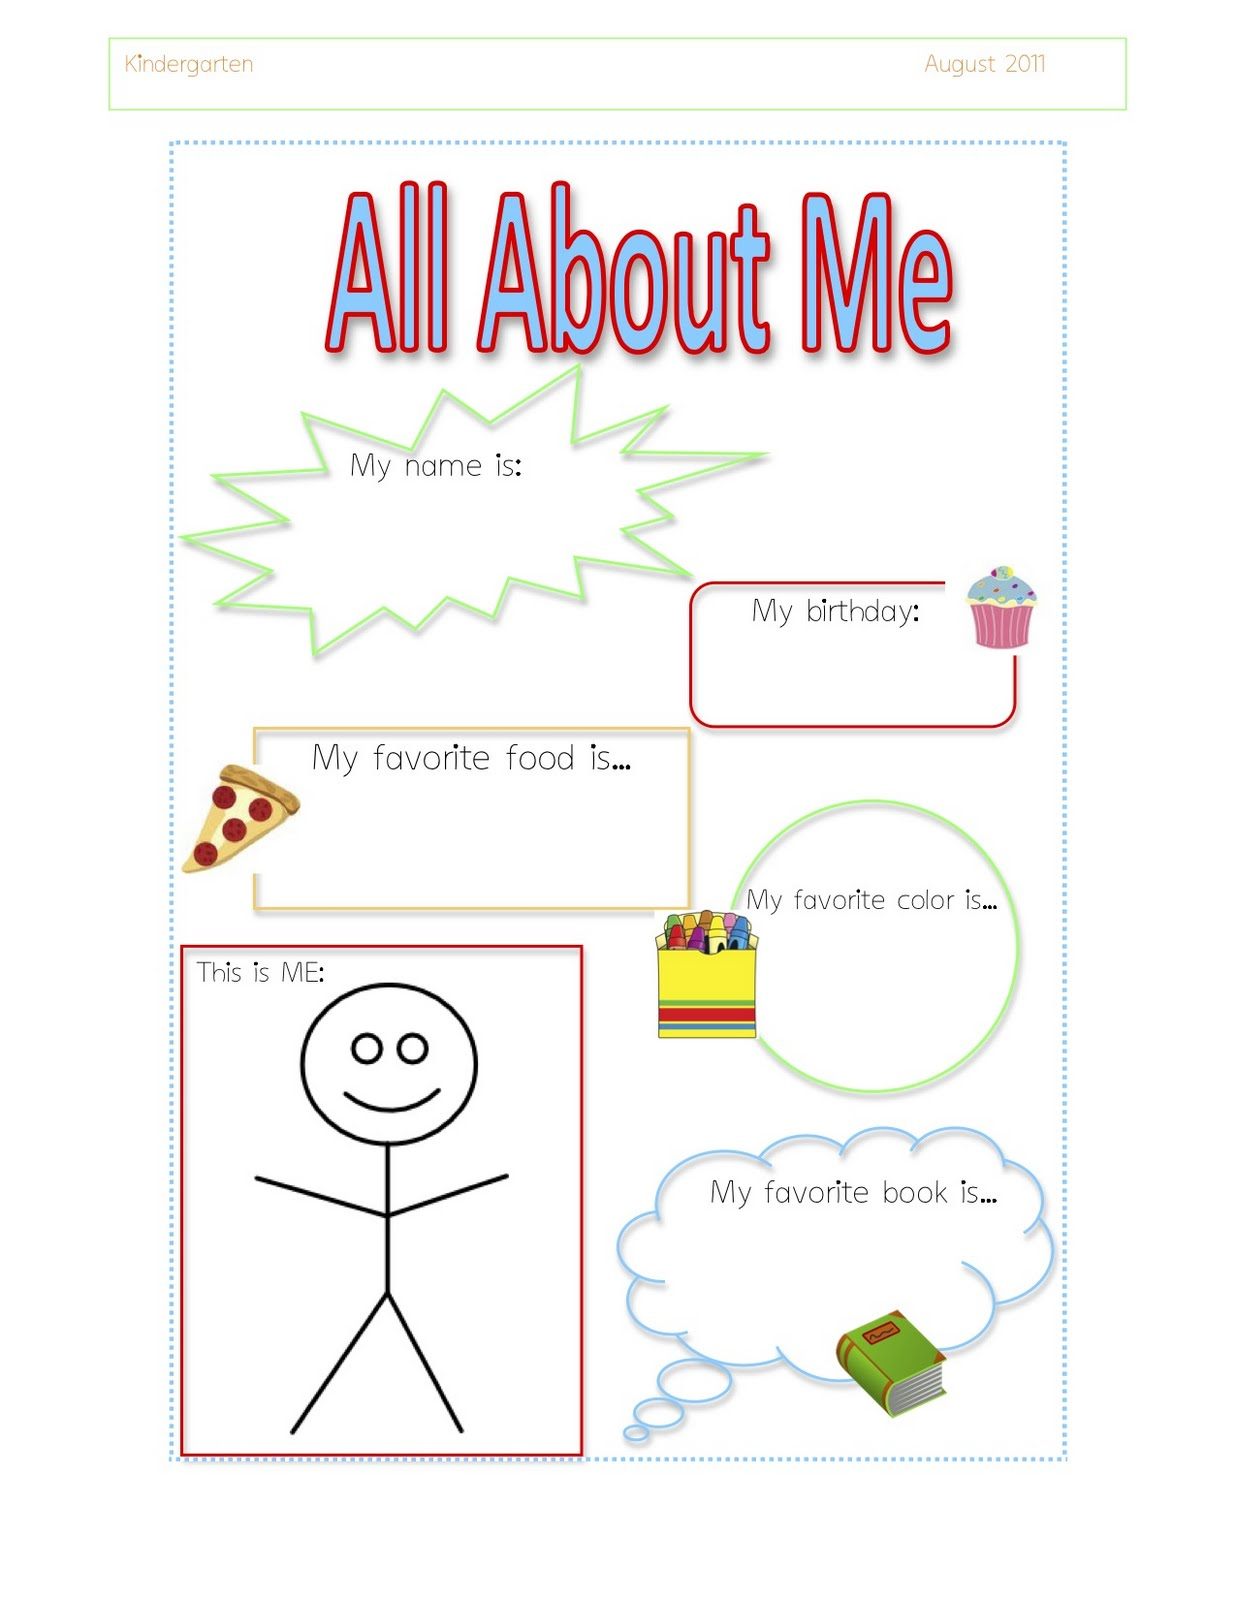 5 Best Images of About.me Printable Preschool - All About ...